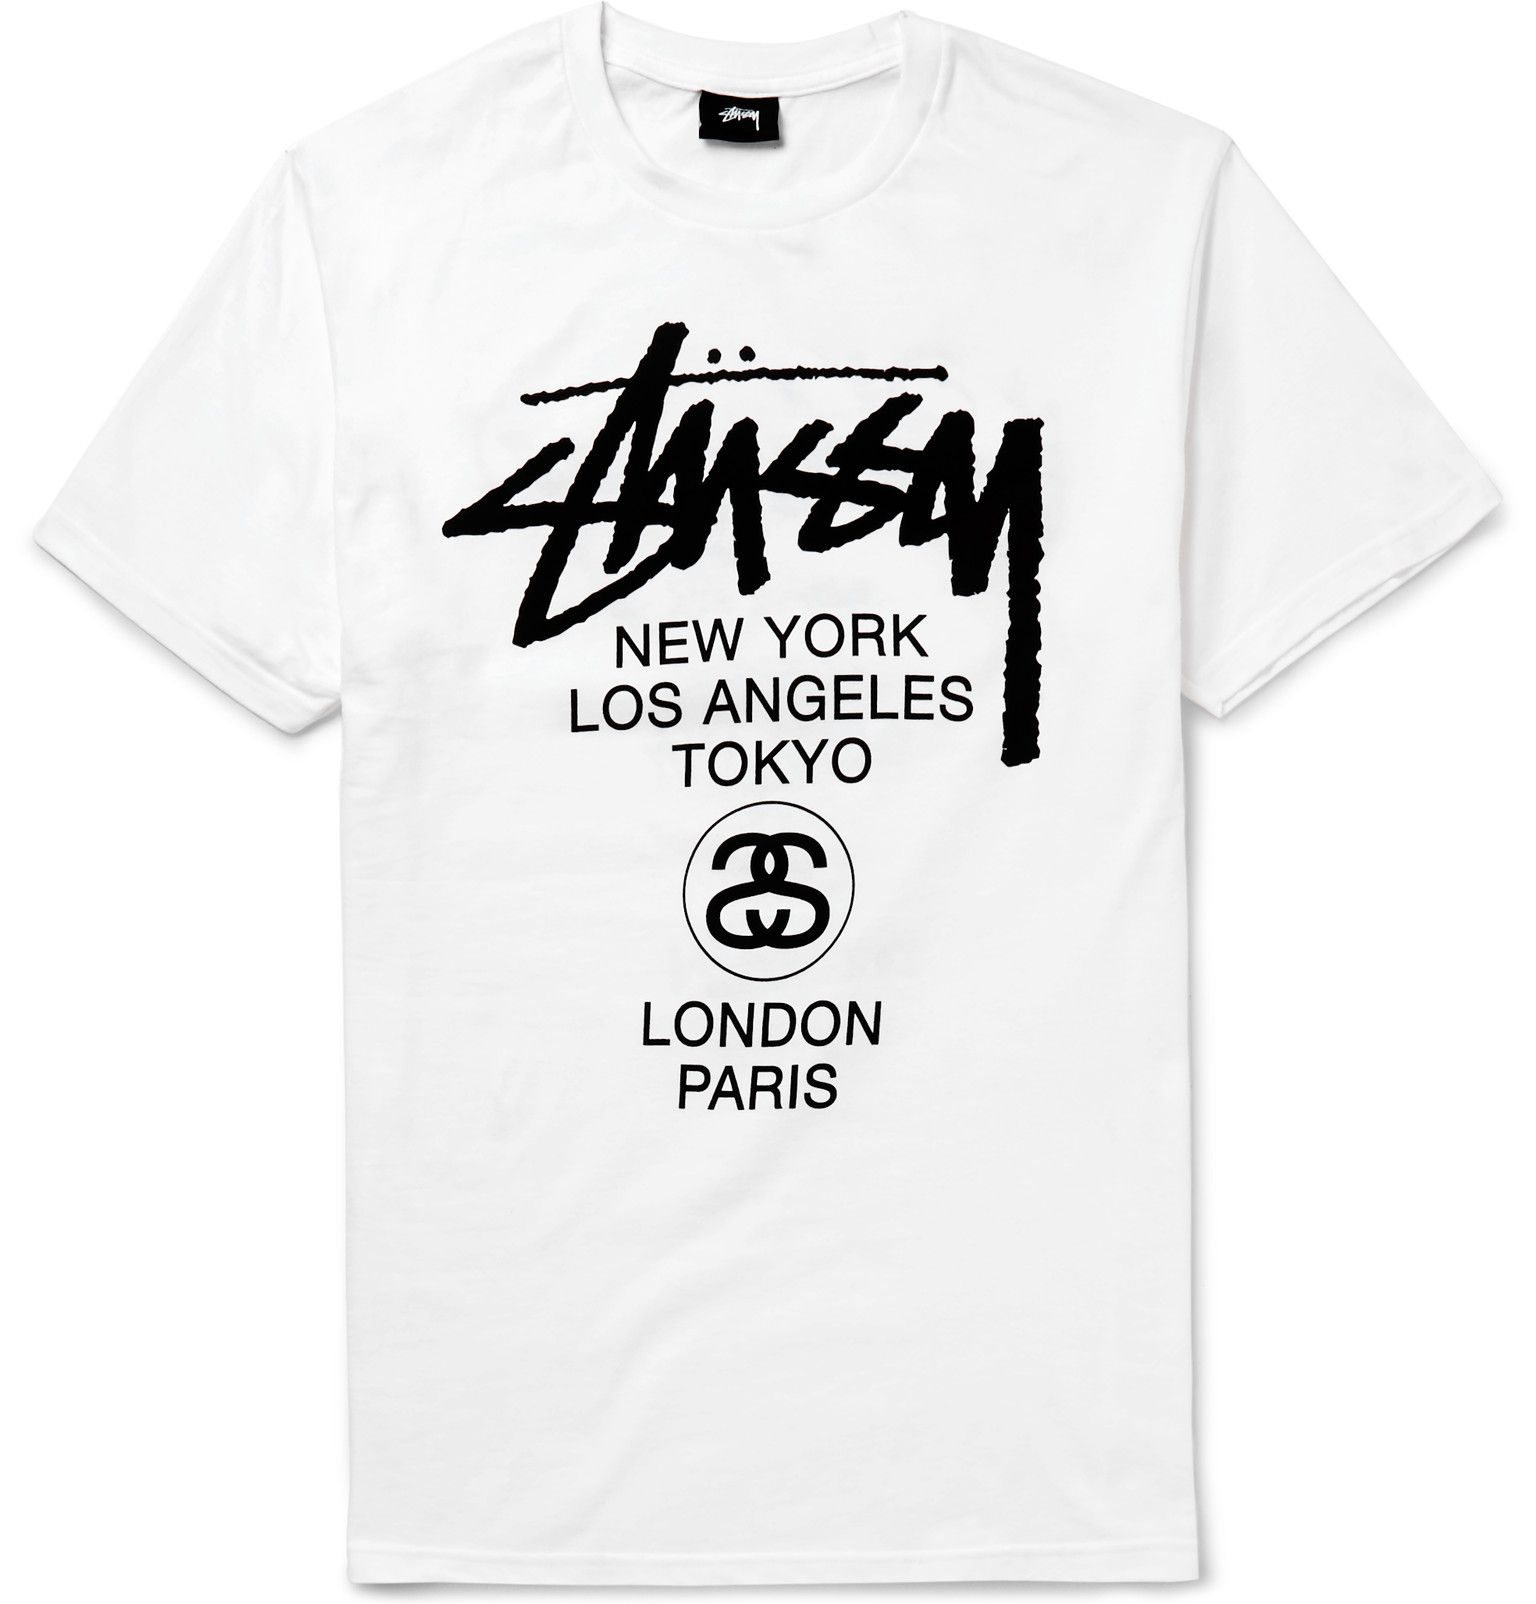 In 1989, Stüssy created its 'World Tour' motif, kick-starting an enduring concept in graphic print design. The front of this cotton-jersey T-shirt is detailed with Helvetica type referencing New York, Los Angeles, Tokyo, London and Paris - all cities considered to be style capitals of the world. The back is emblazoned with graffiti-like lettering calling out Bronx, Compton, Santa Ana, Brooklyn and Venice; areas where the label's street aesthetic thrived.